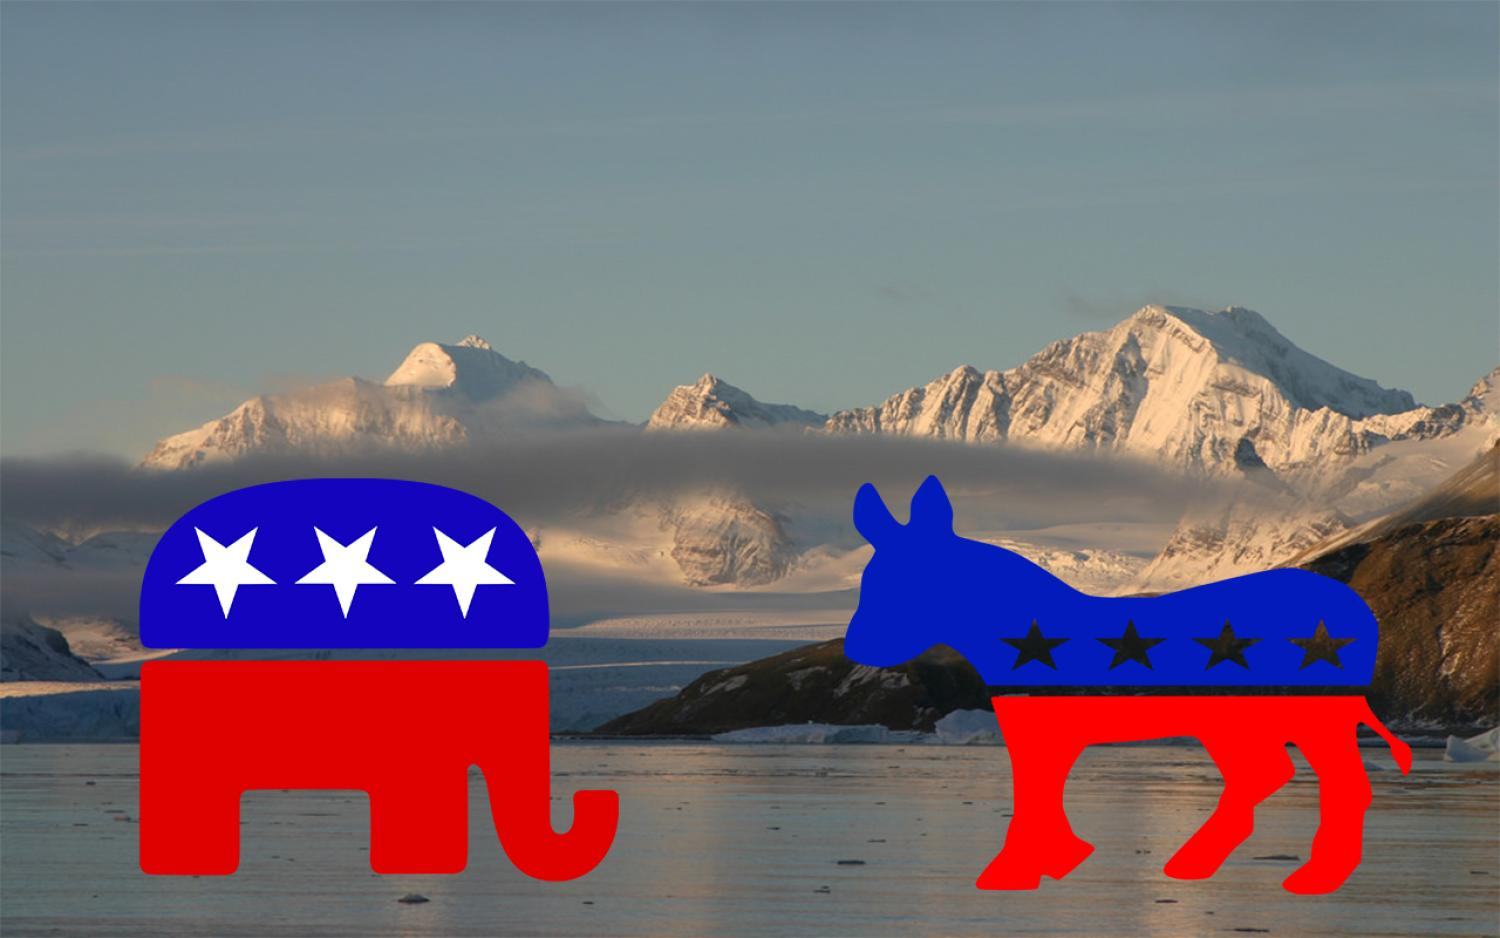 Democrat and Republican logos over mountain background